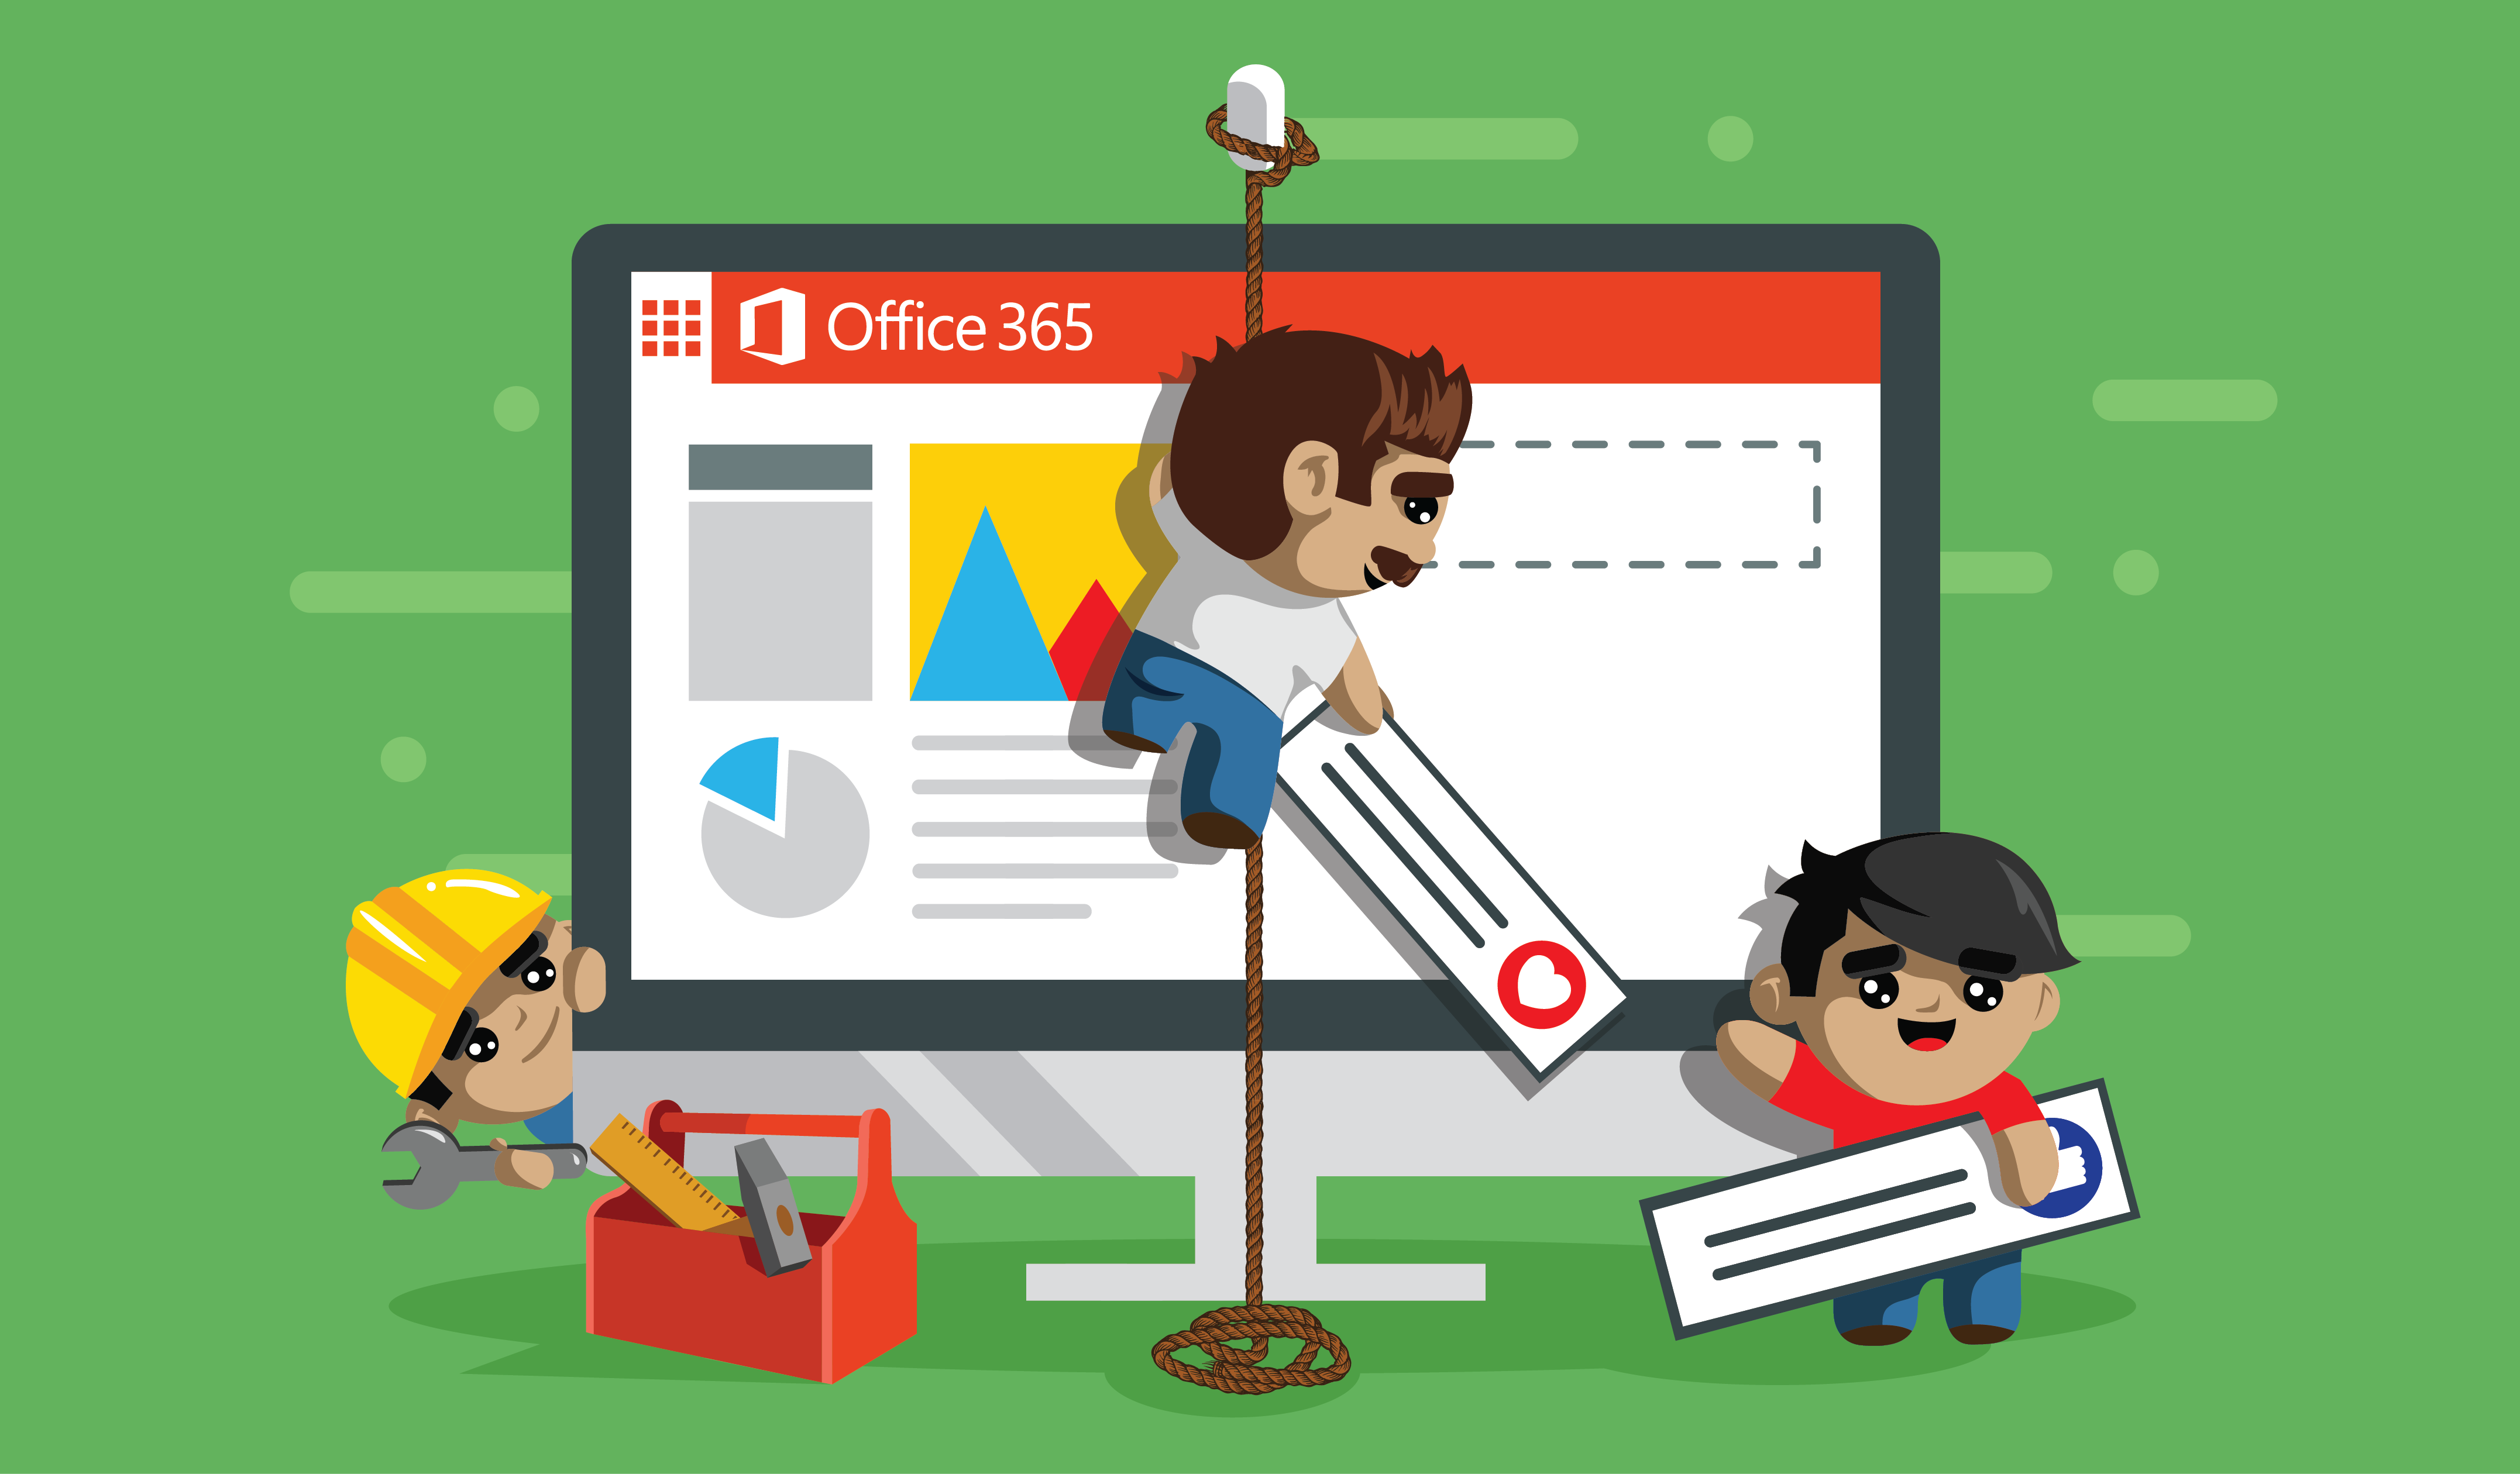 Create a comic-like banner for Office 365 blog posts